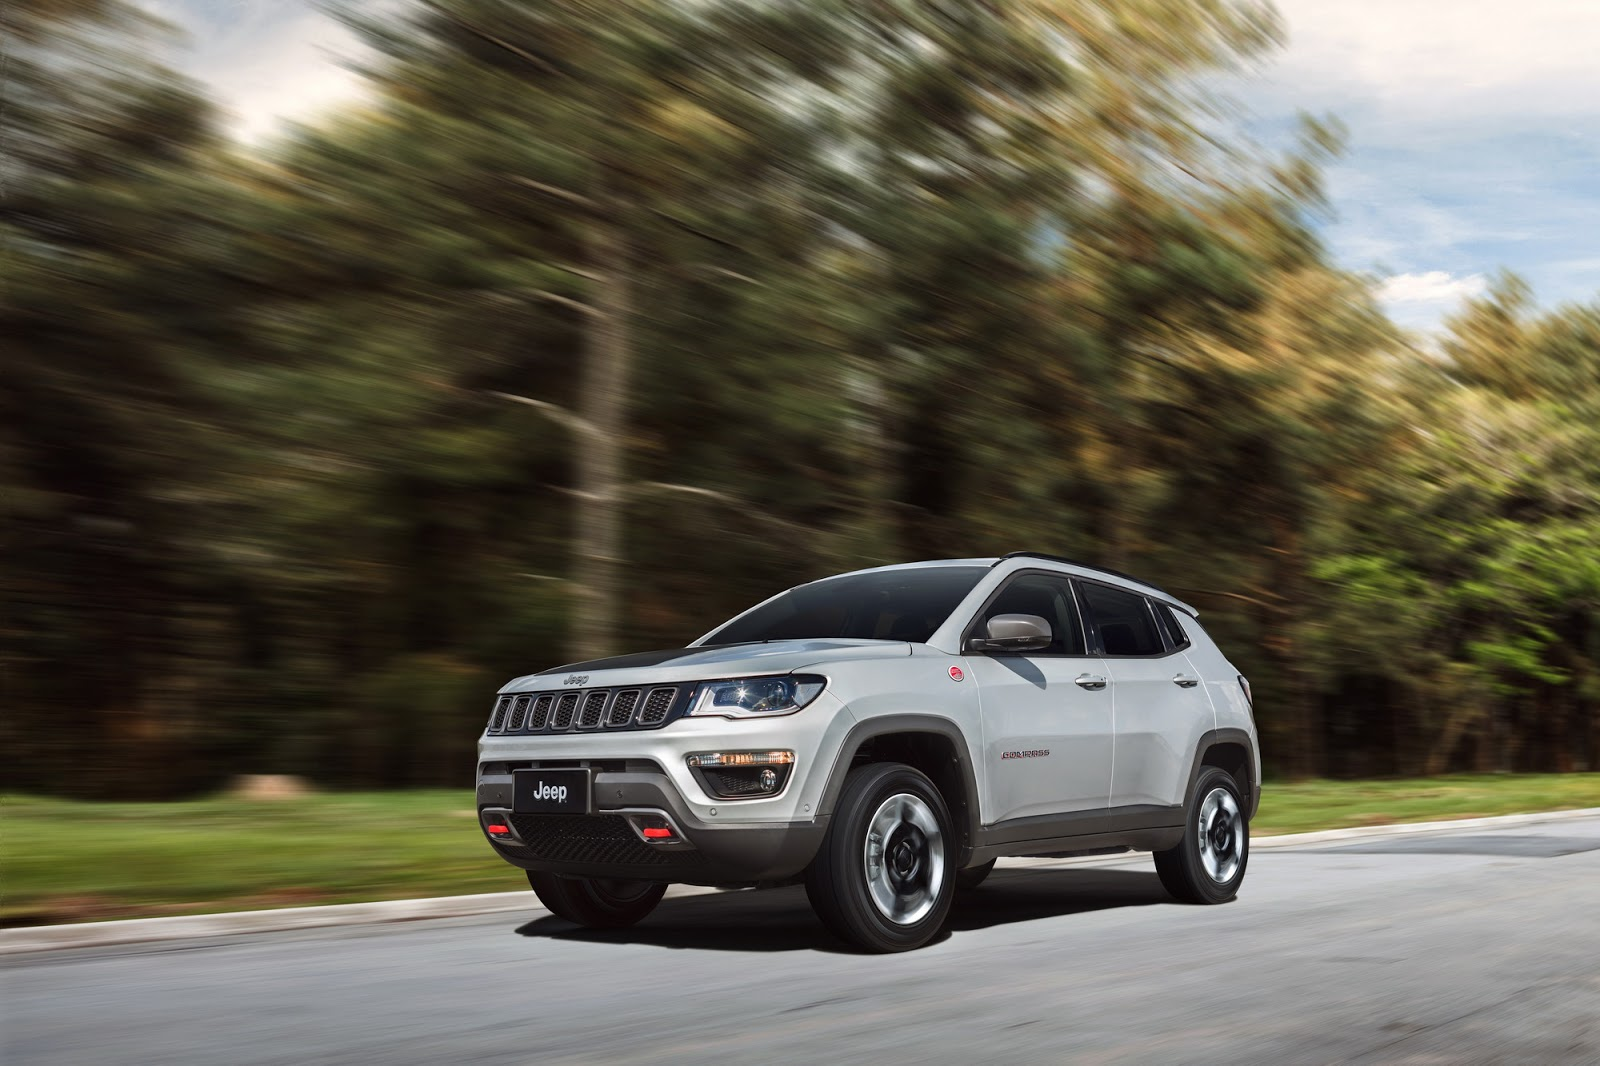 2017 Jeep Compass Poses For The Camera In All Trim Levels